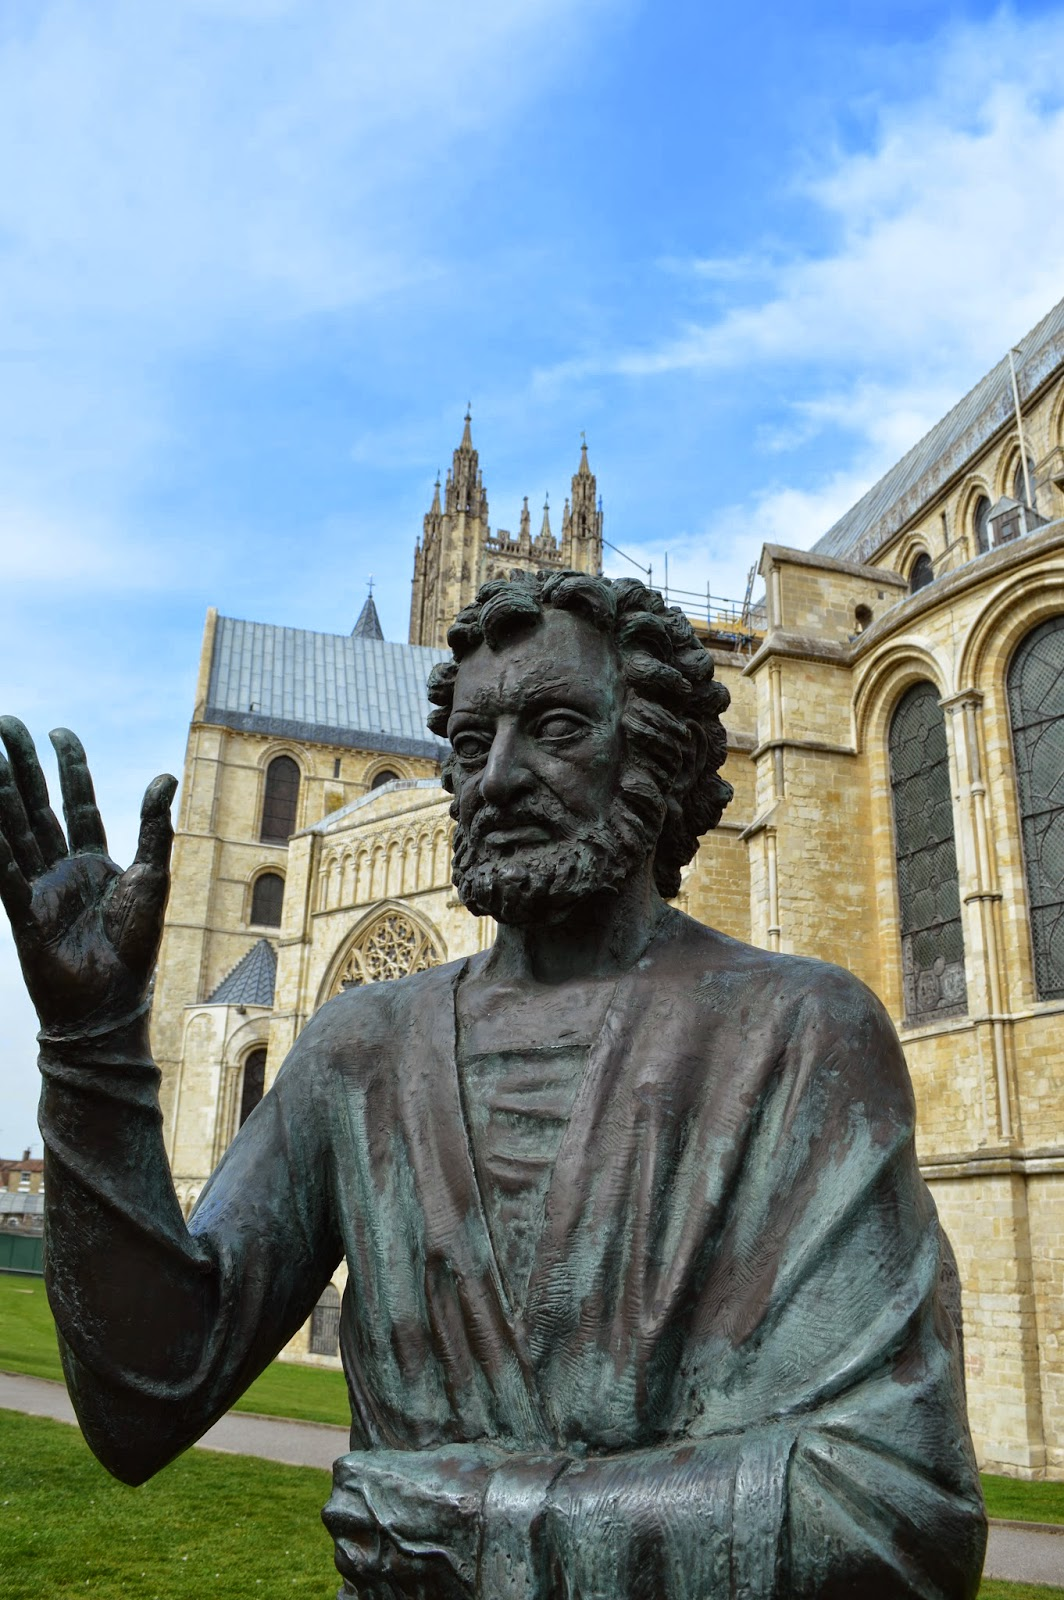 Canterbury Cathedral, Thomas Becket, martyr, Saint Augustine, worship, church, visit, Kent, day trip, religious, old, medieval, stained glass, impressive, big, history, historical, spires, decorated, photo, photograph